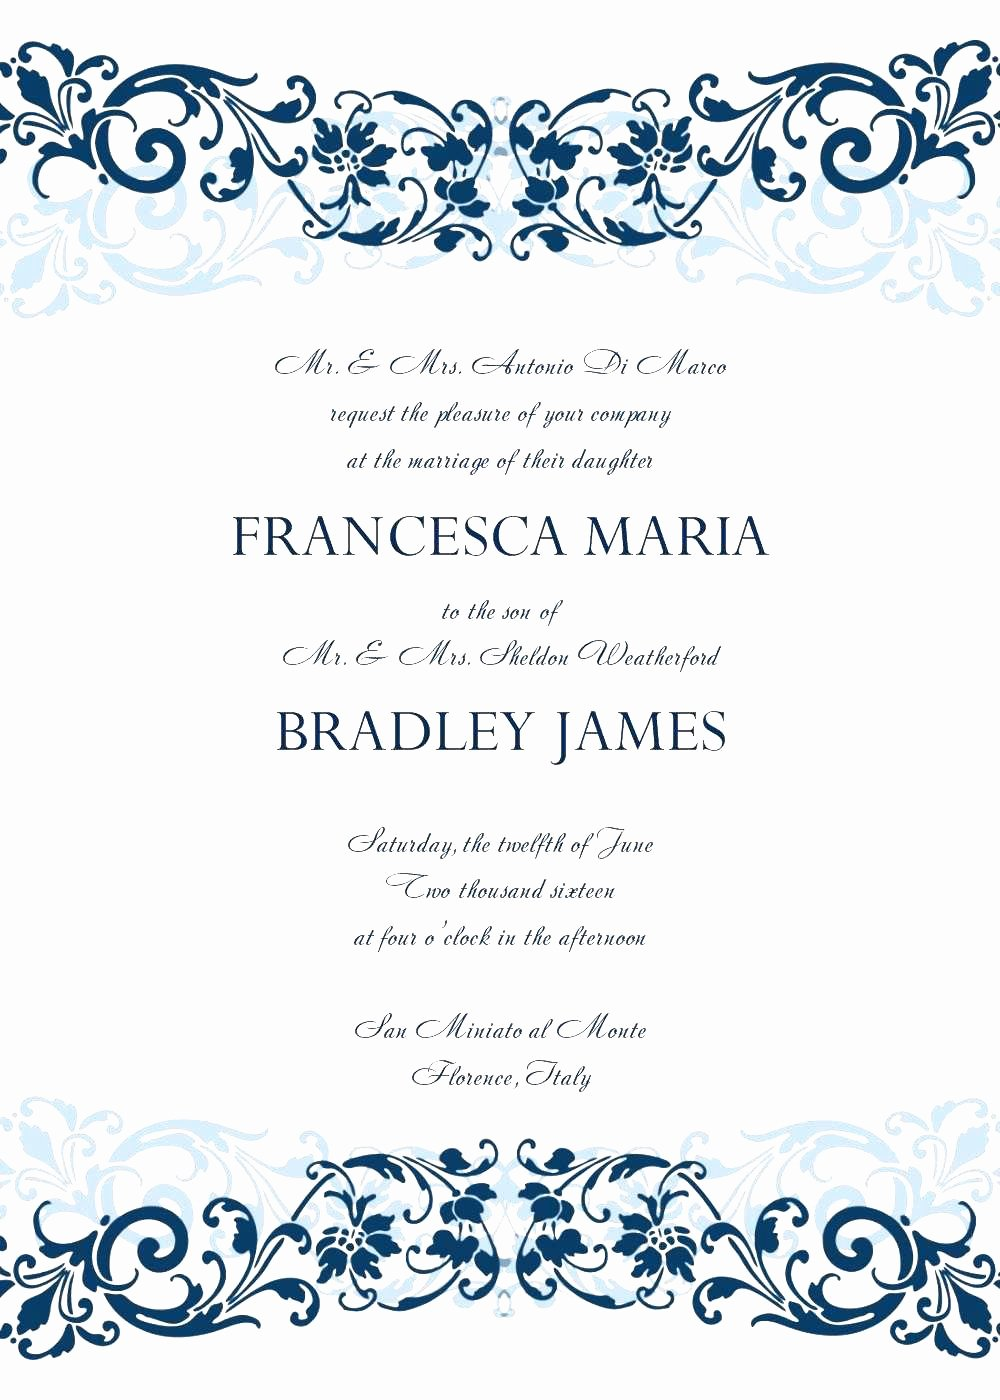 Free formal Invitation Template Lovely Free formal Invitation Templates